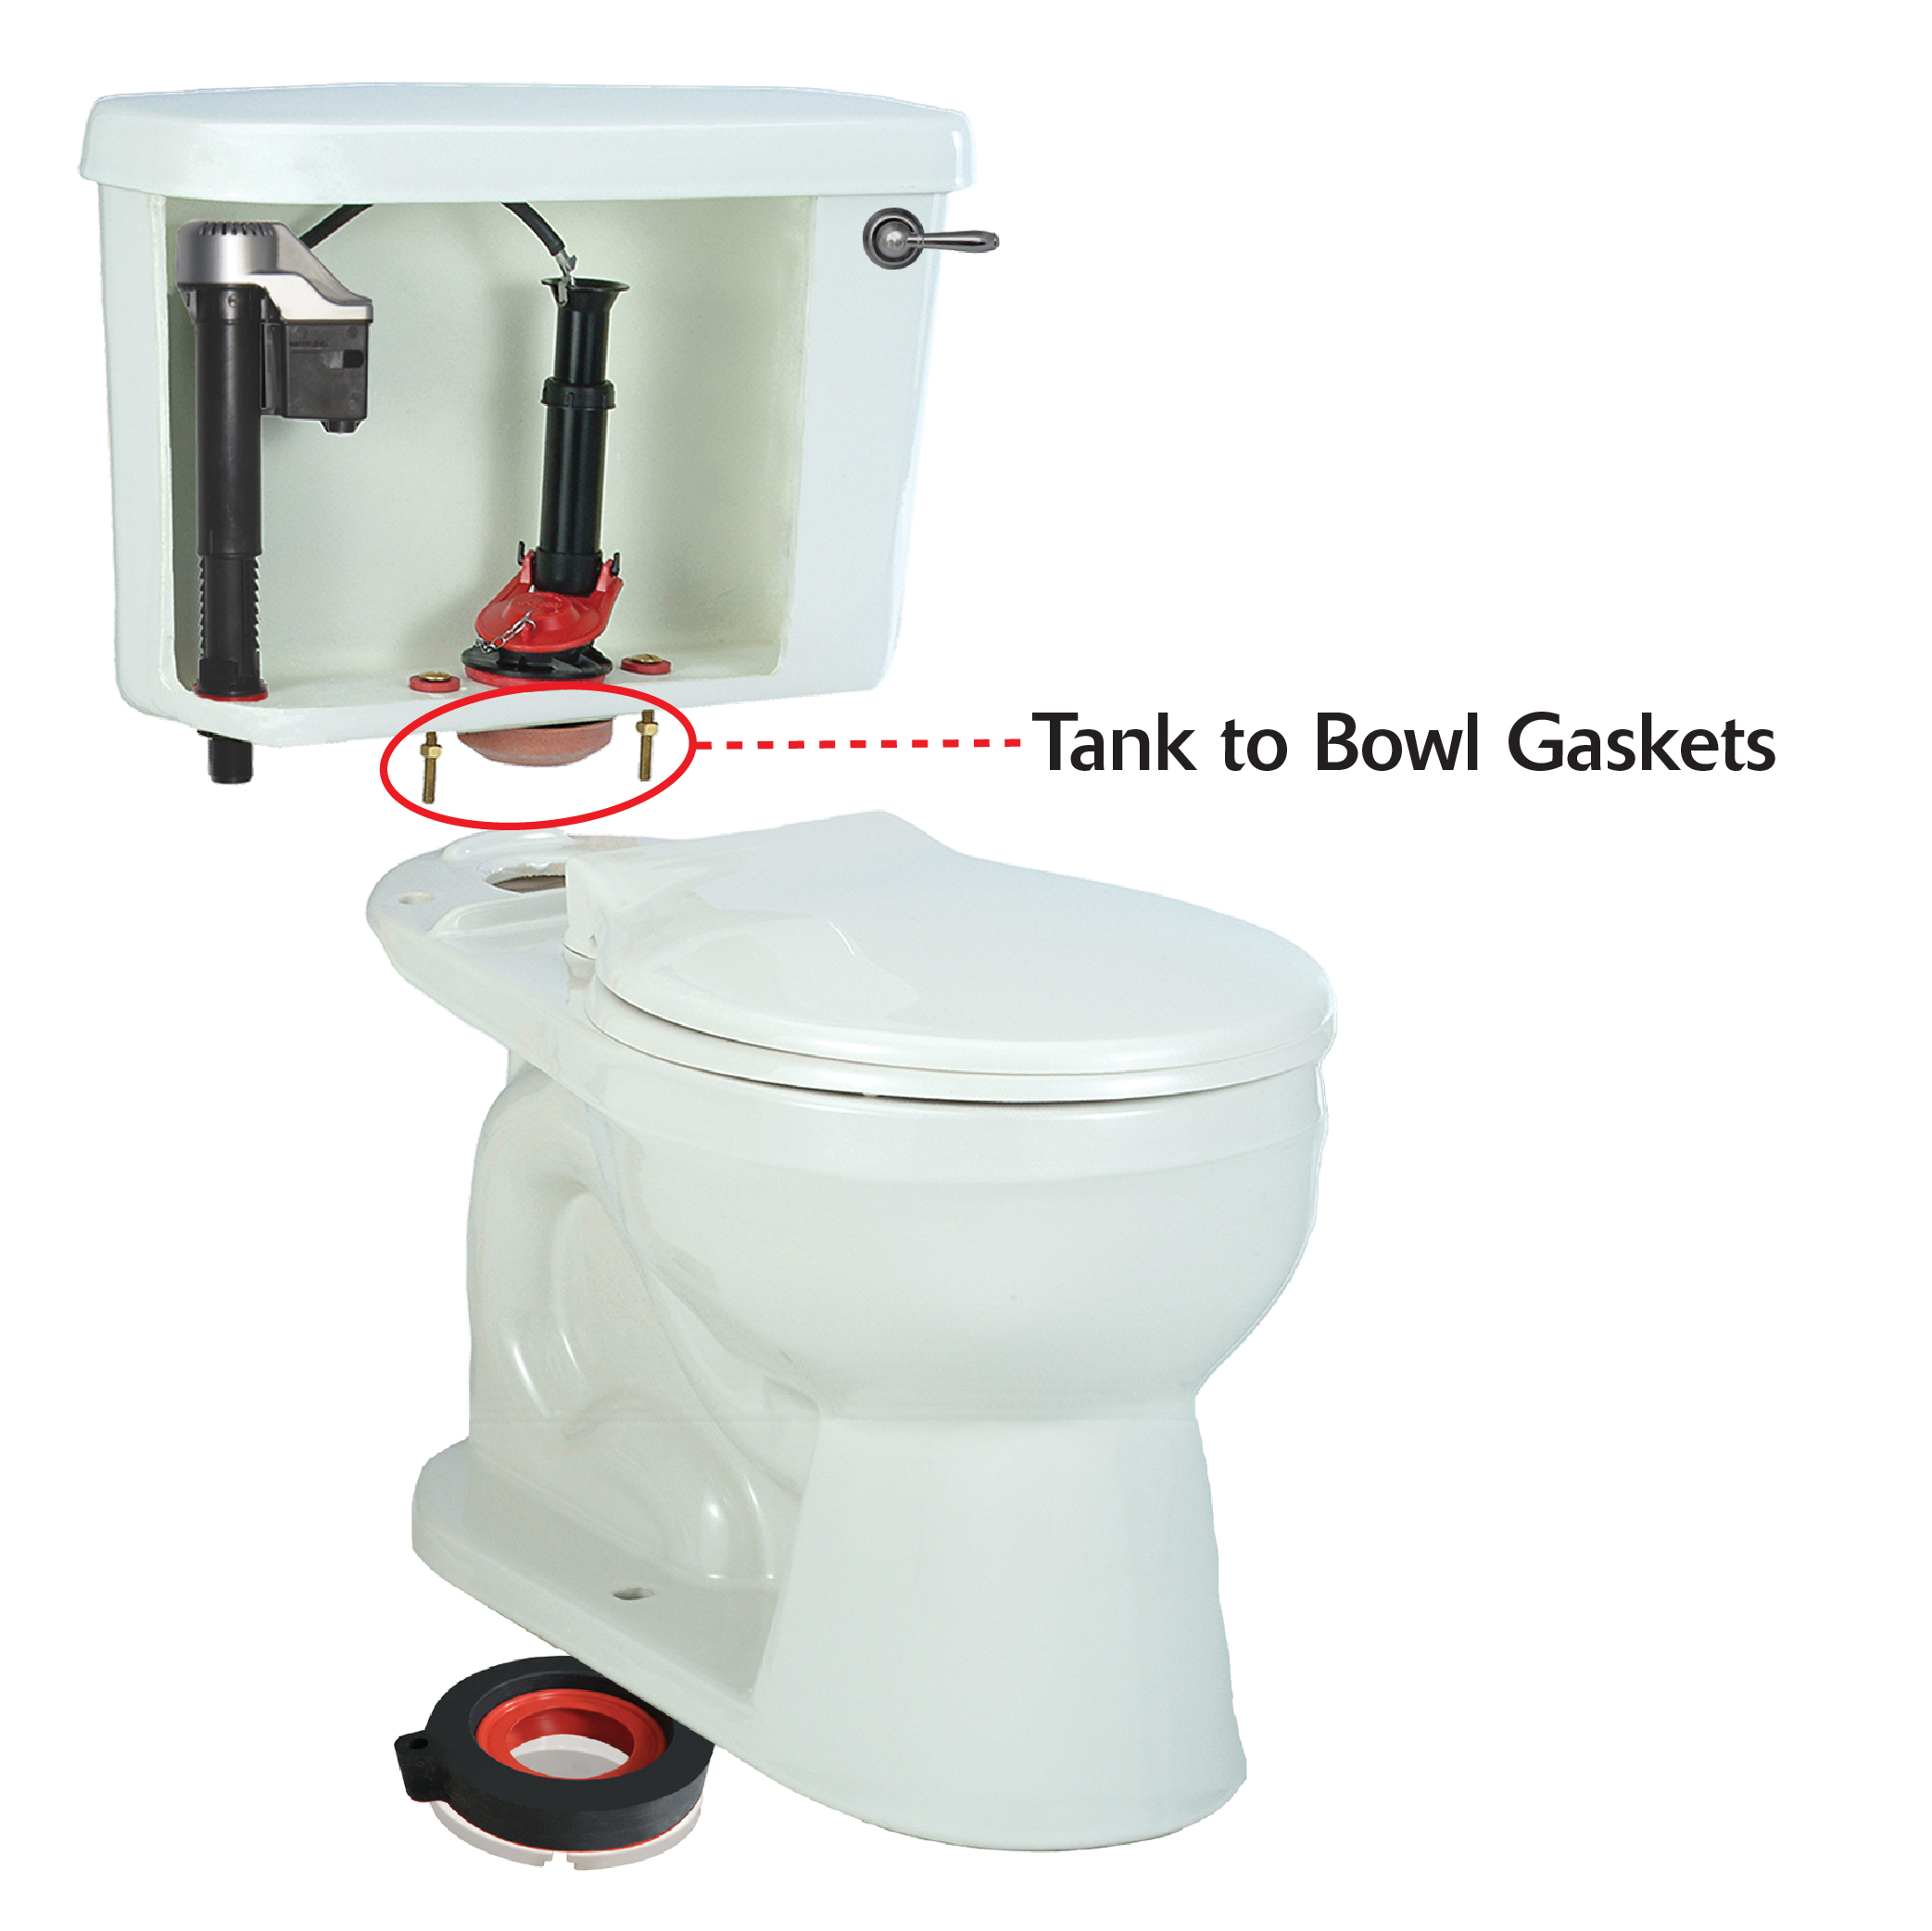 Toilet Tank To Bowl Gaskets